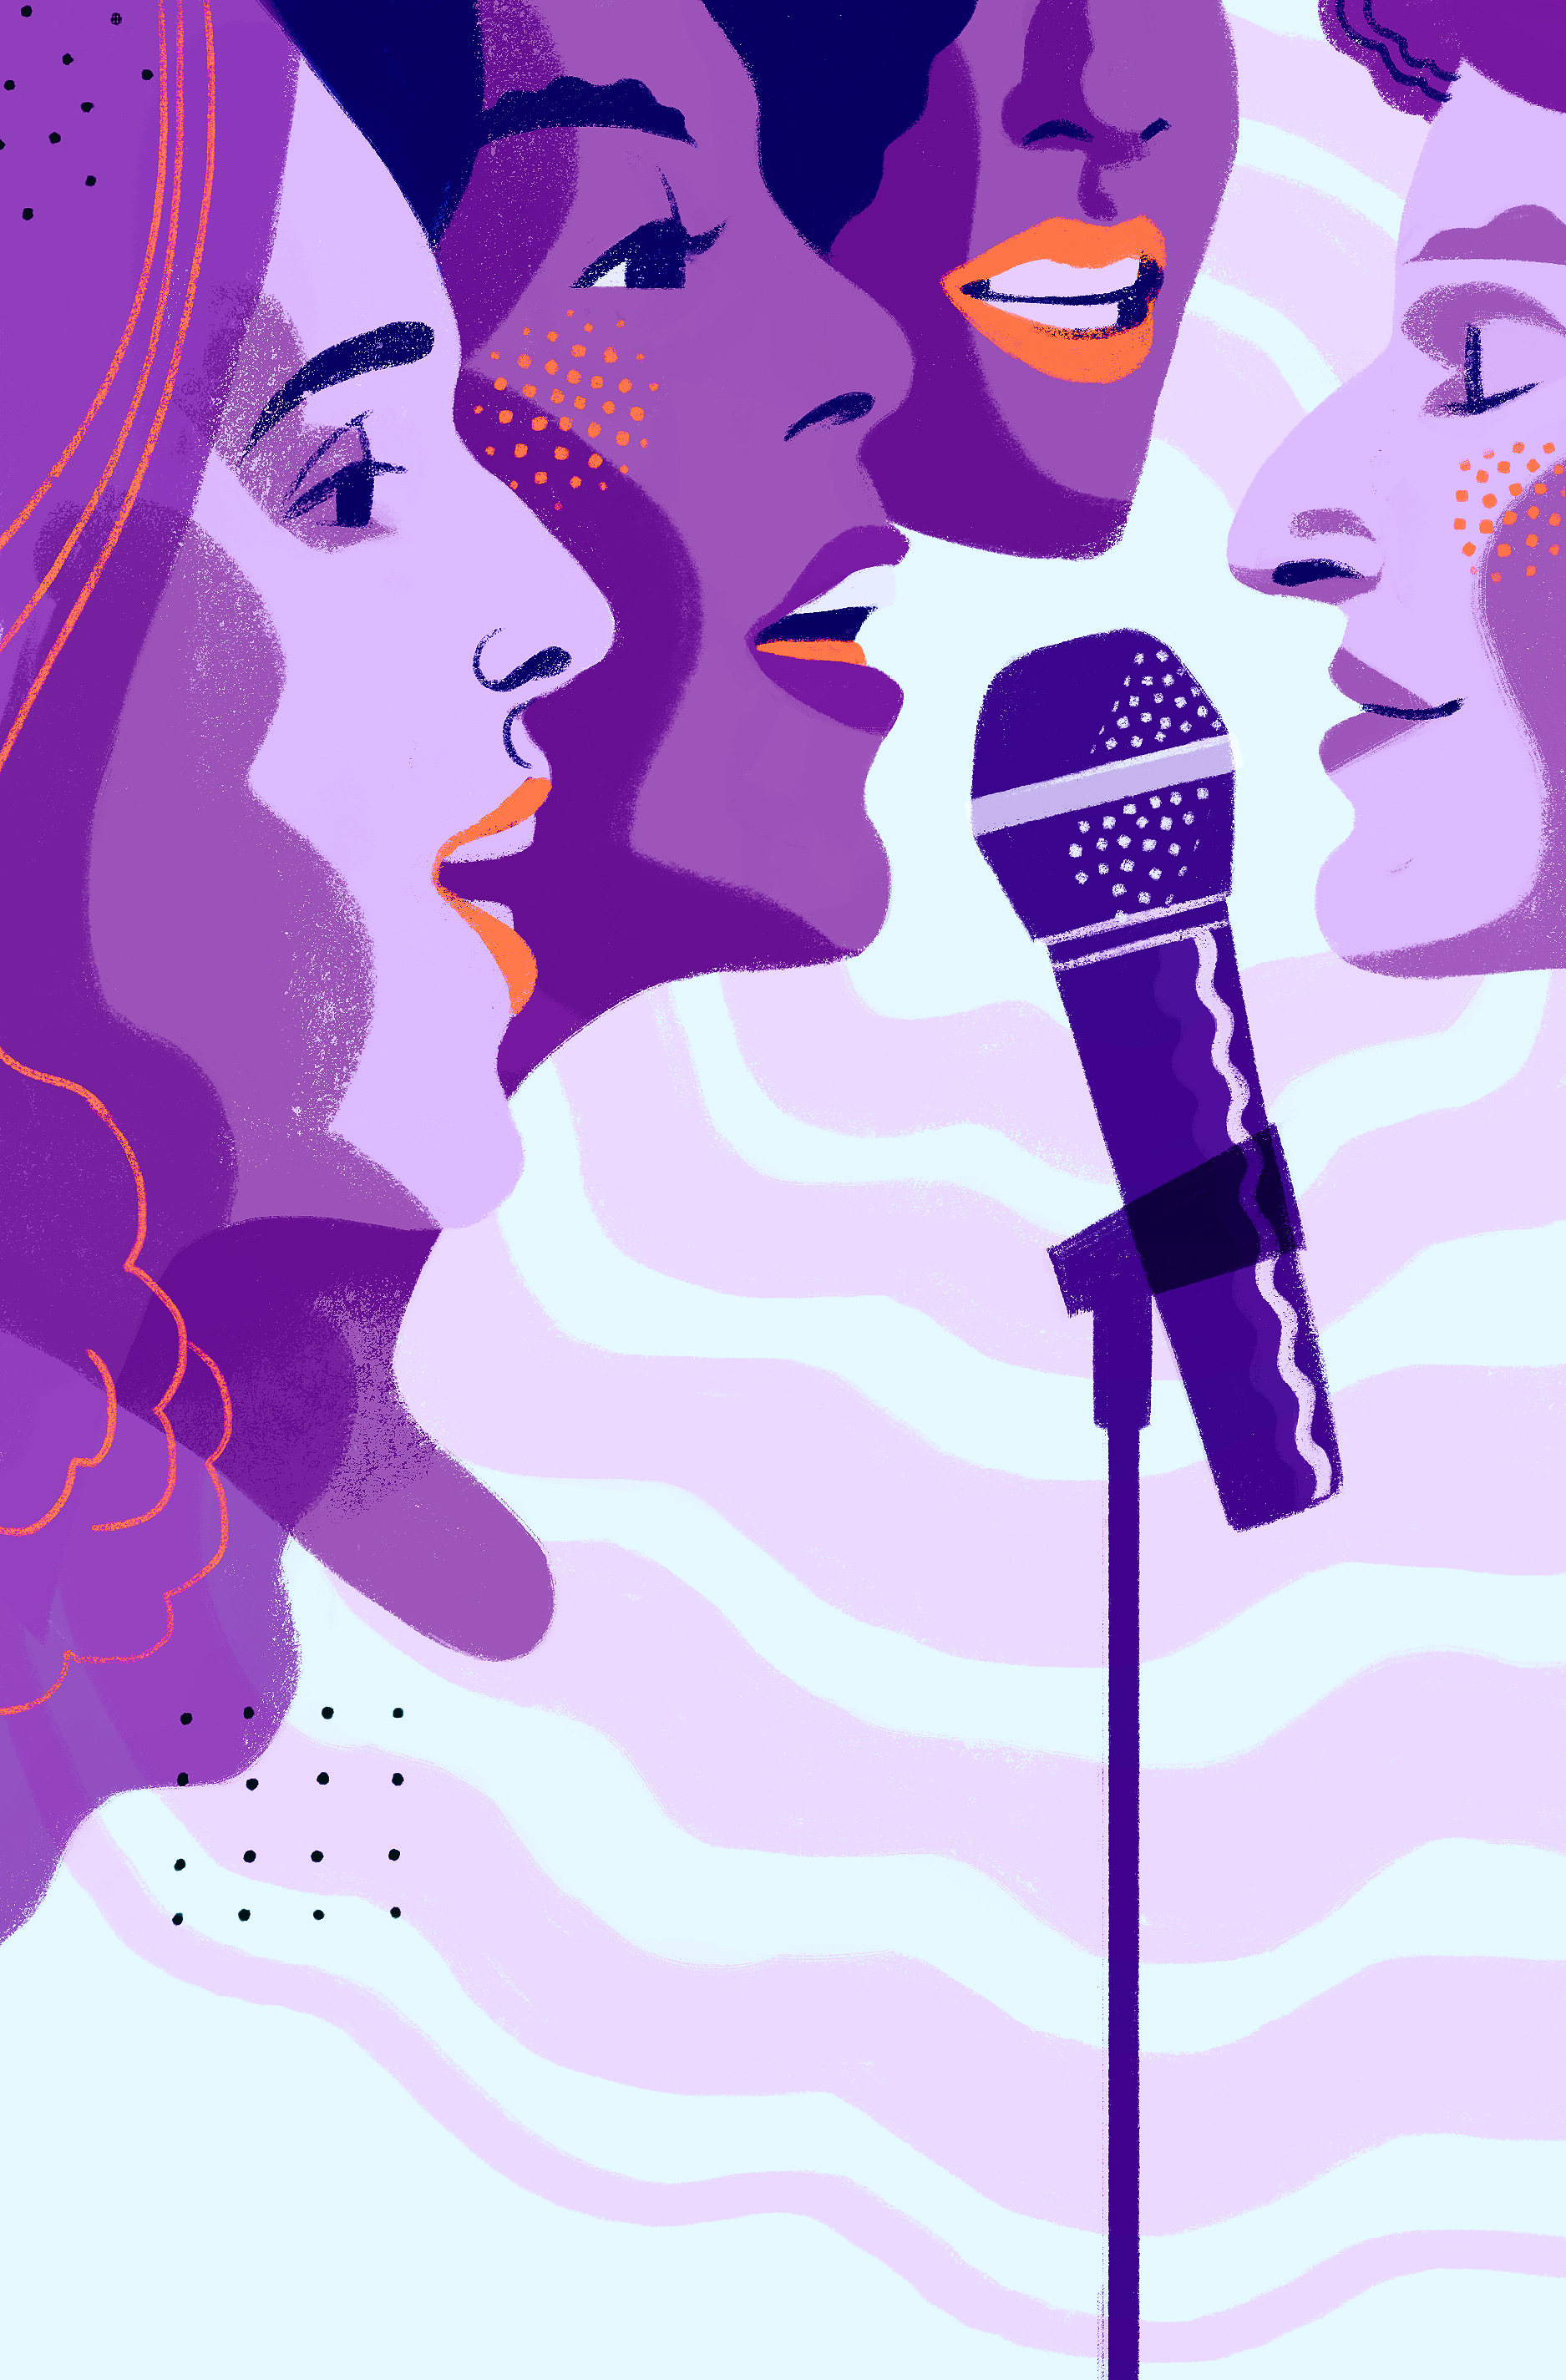 Karaoke at Pub 340 || Illustration by Cristian Fowlie for Discorder Magazine